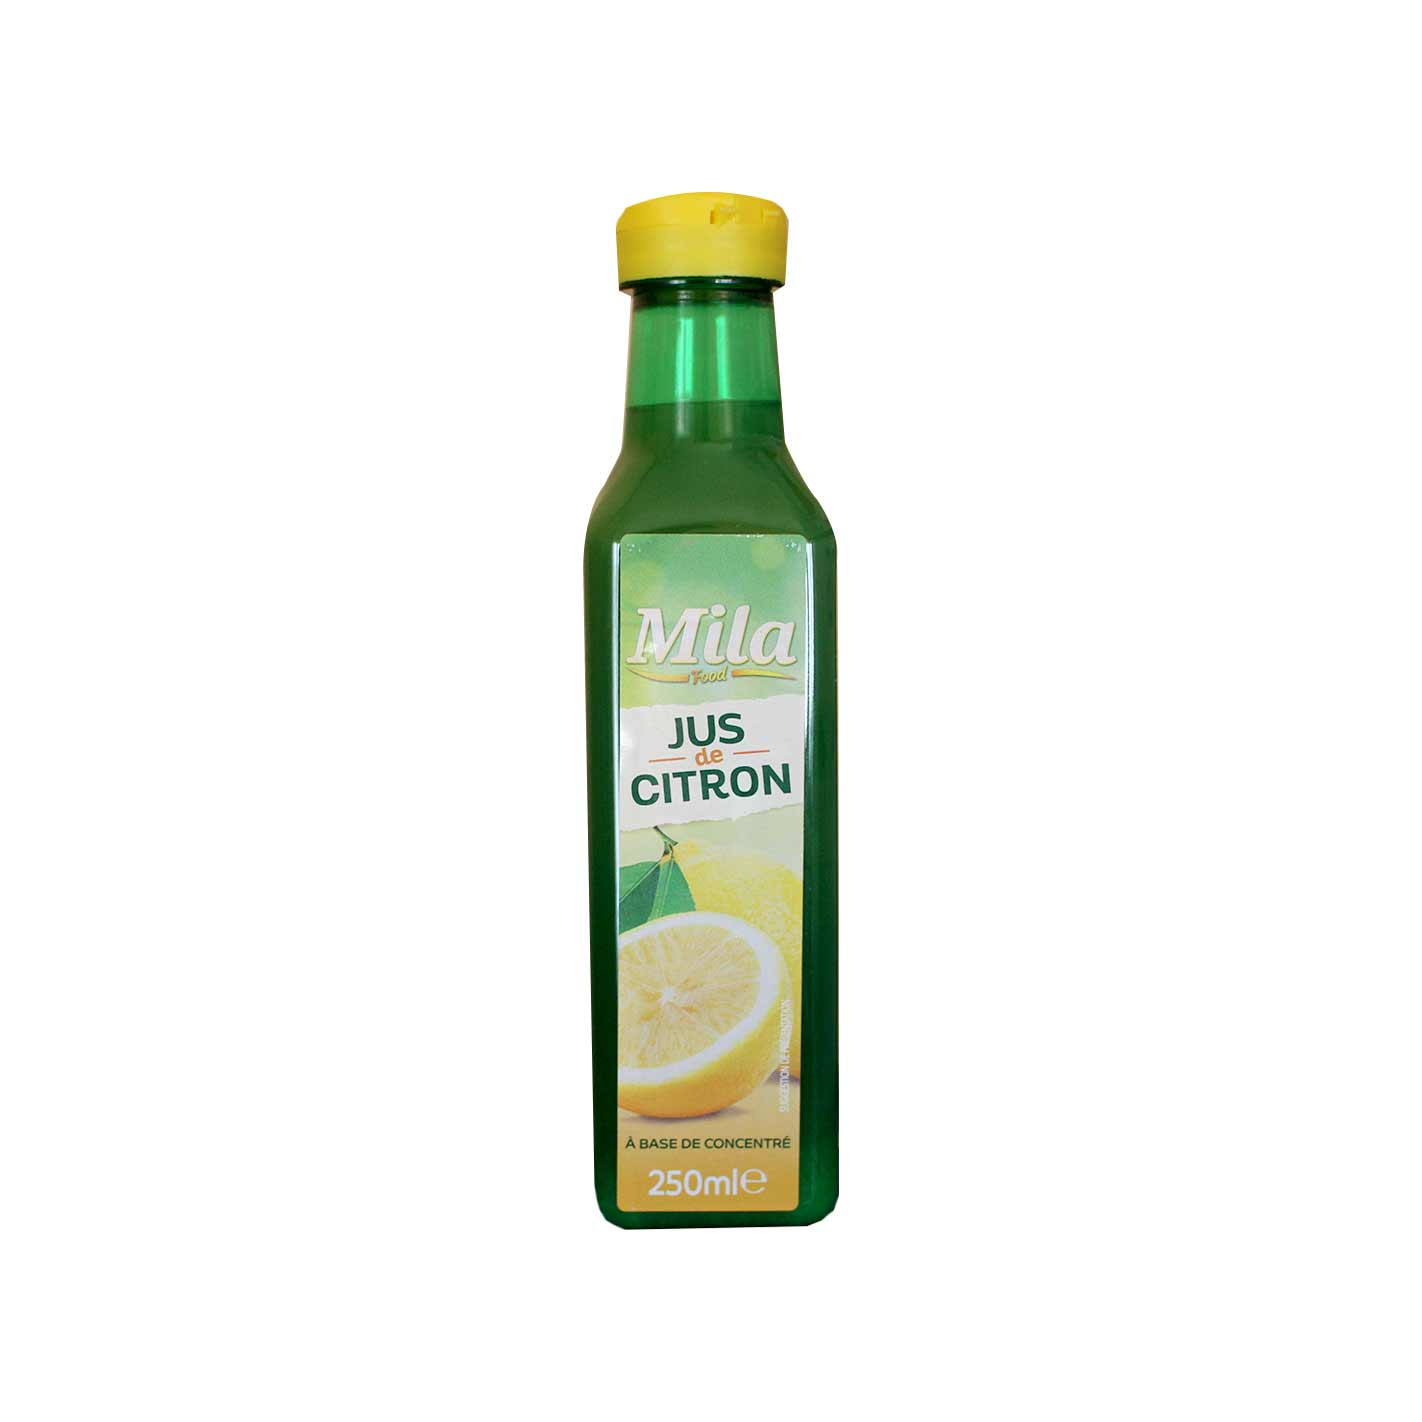 Mila - Jus de citron - 250 ml